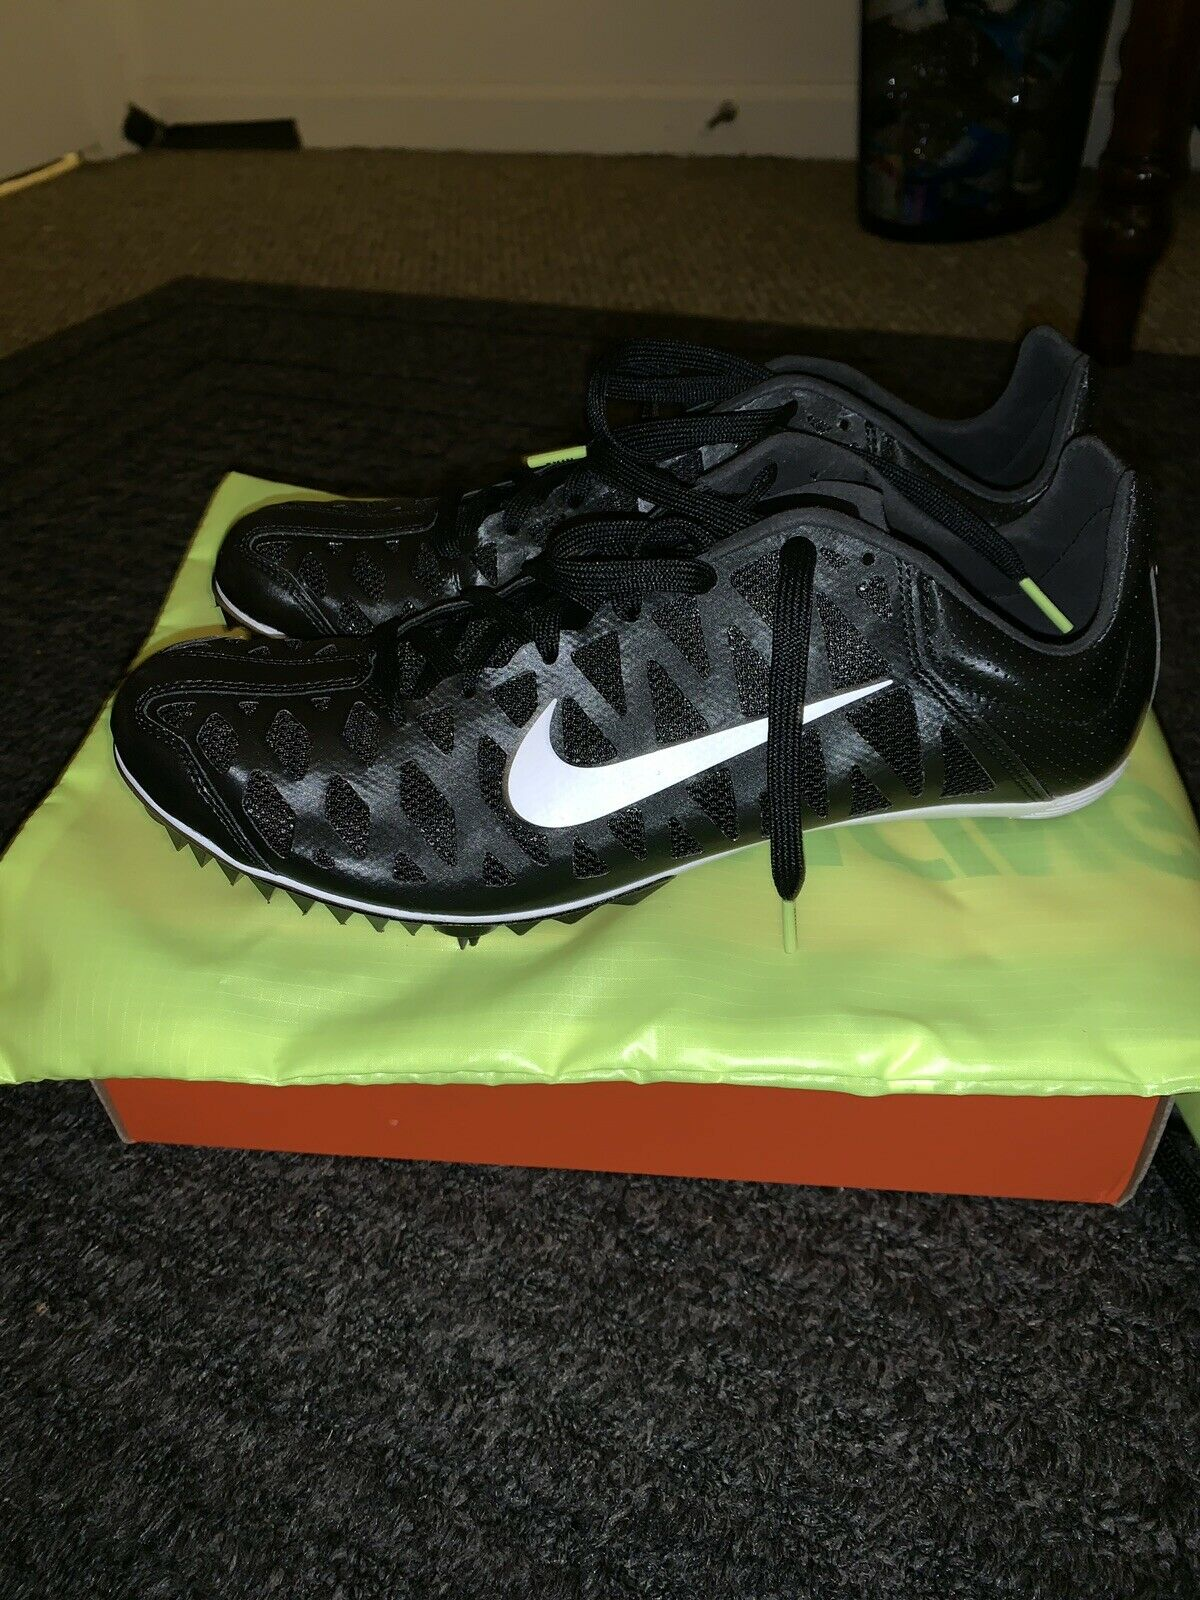 NIKE Zoom Rival M Size 11.5 Track Spikes- Bag & Spikes Included